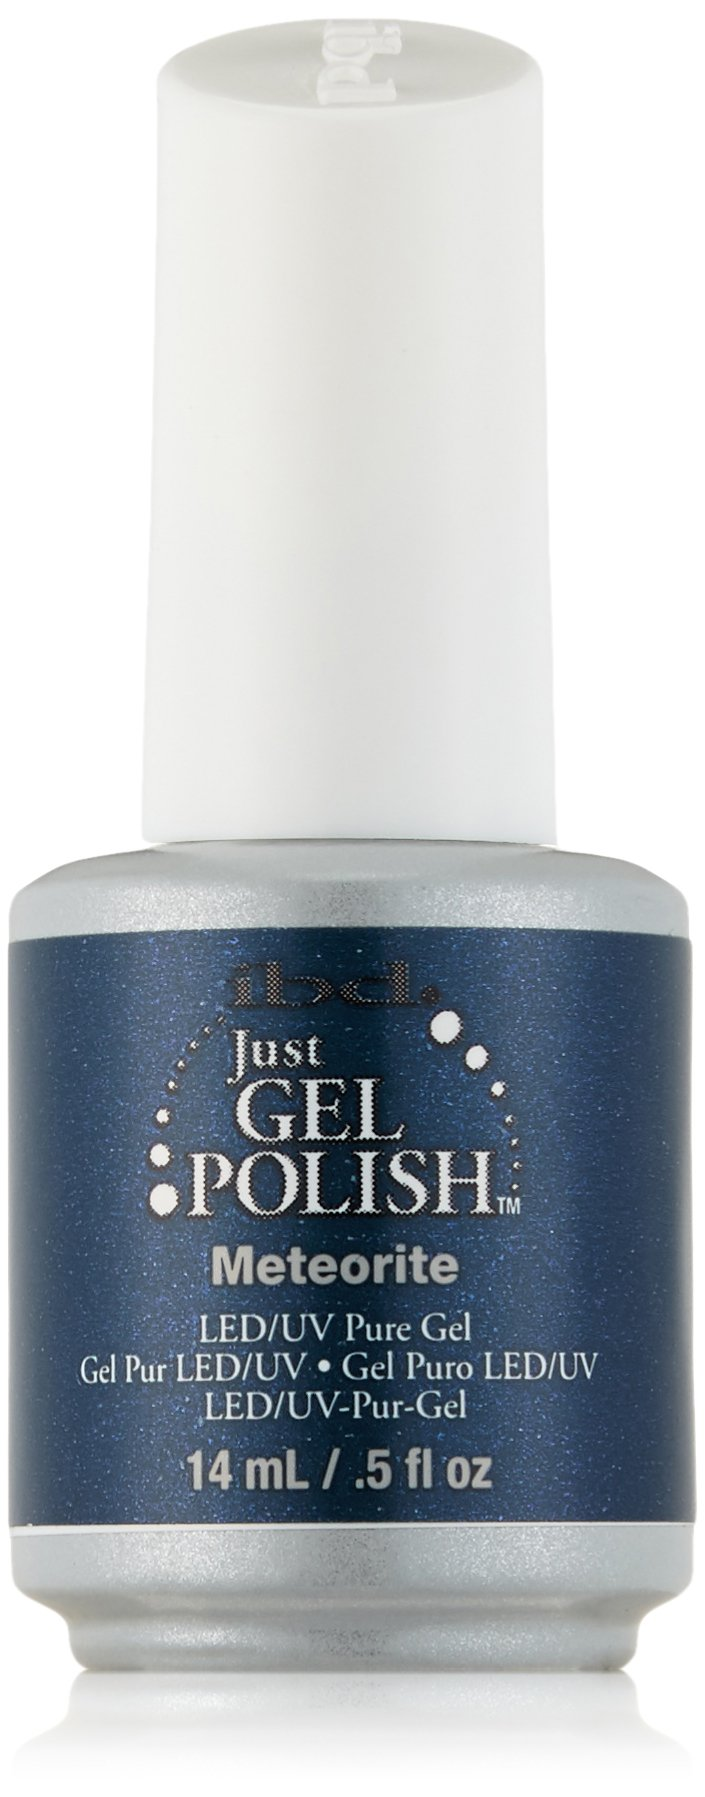 Home ibd just gel polish ibd just gel polish abracadabra - Ibd Just Gel Nail Polish Meteorite 0 5 Fluid Ounce